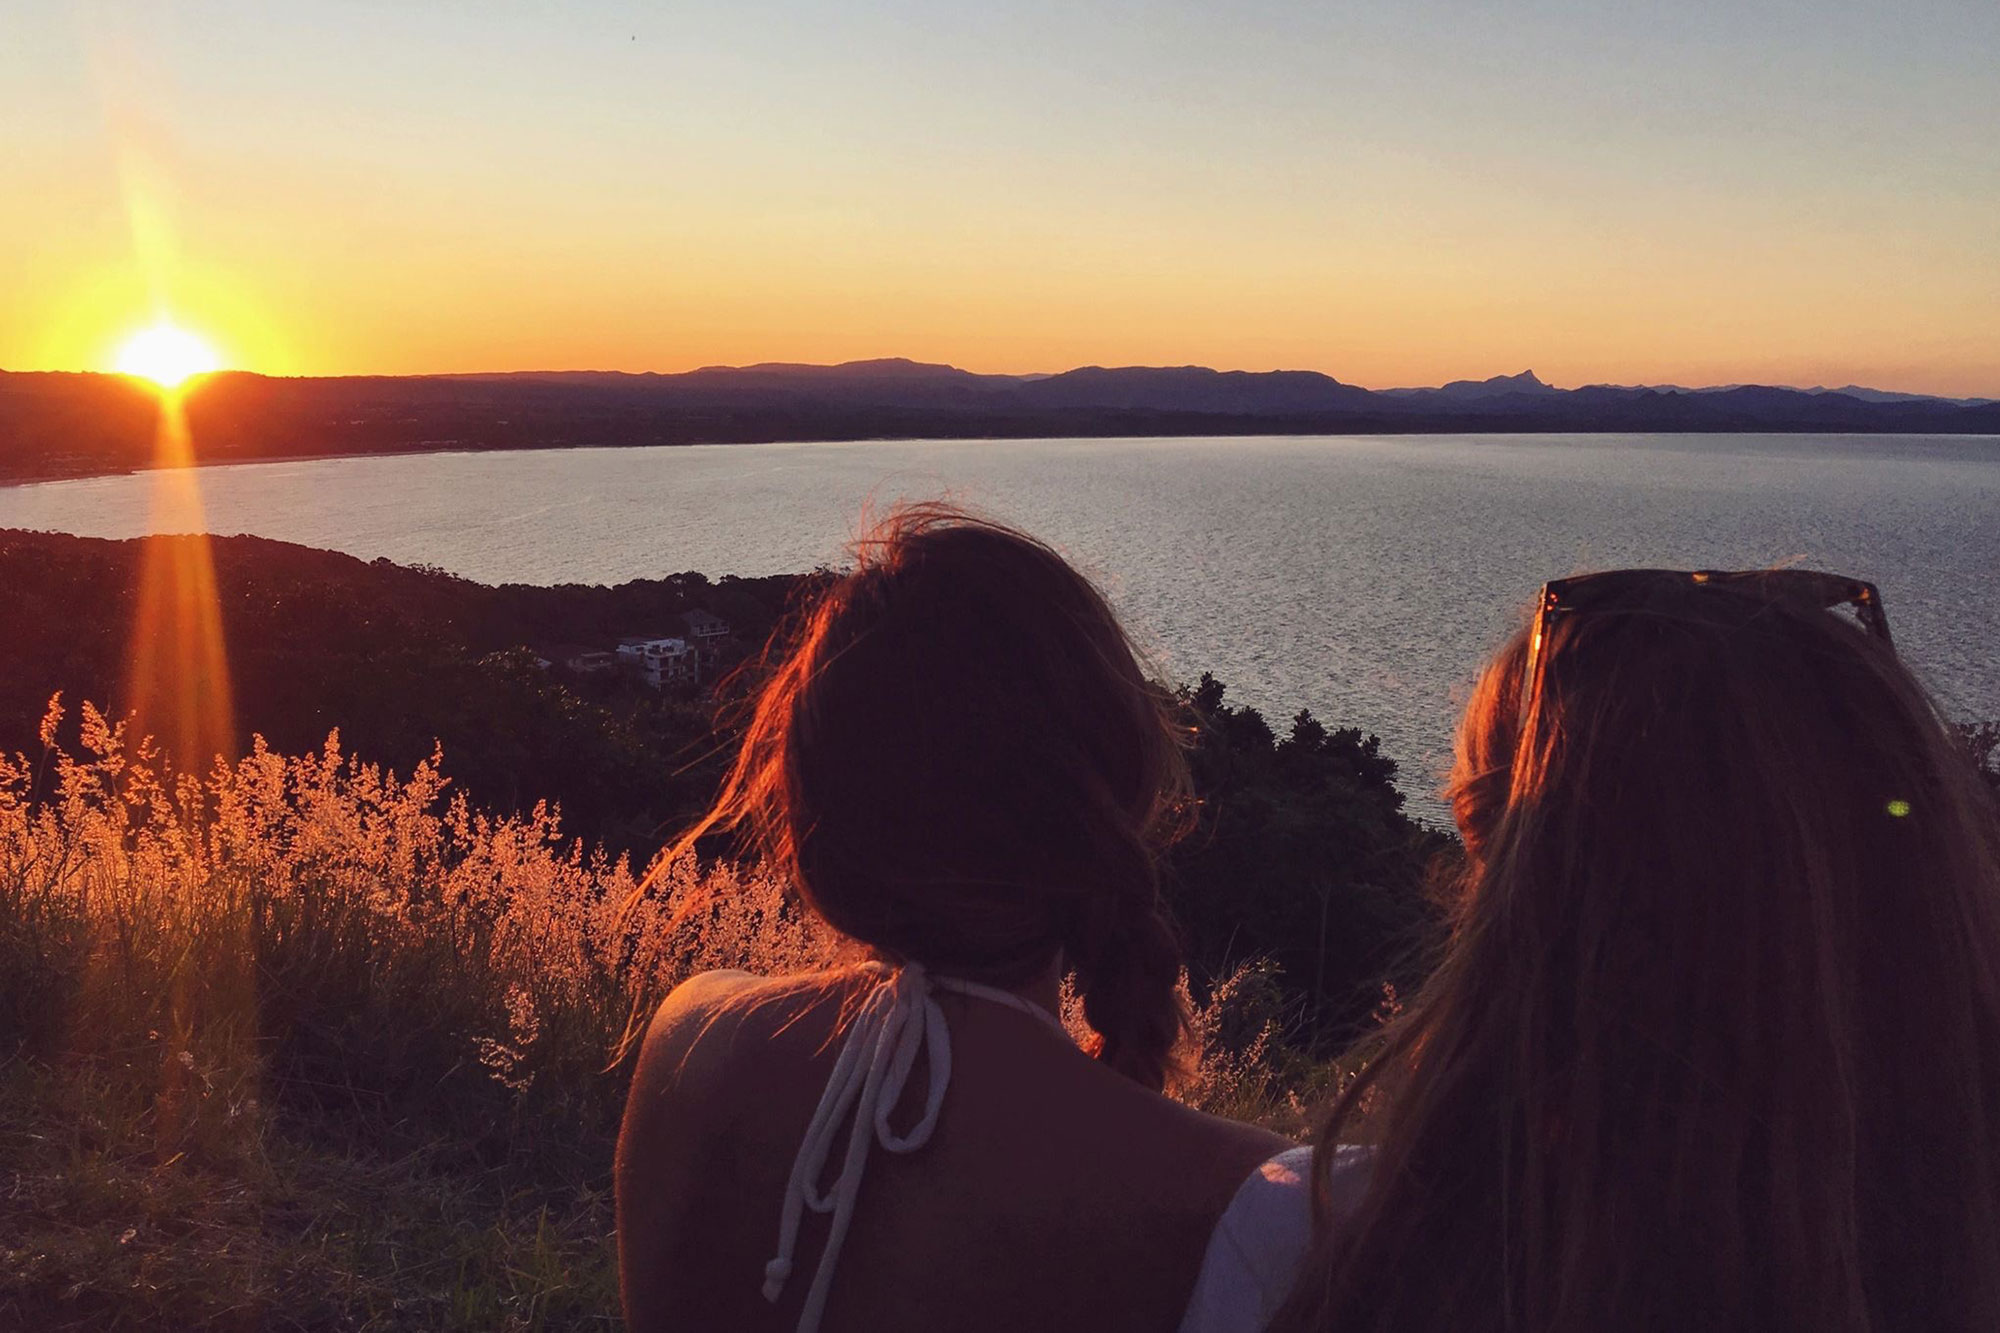 Two girls staring at the sunset